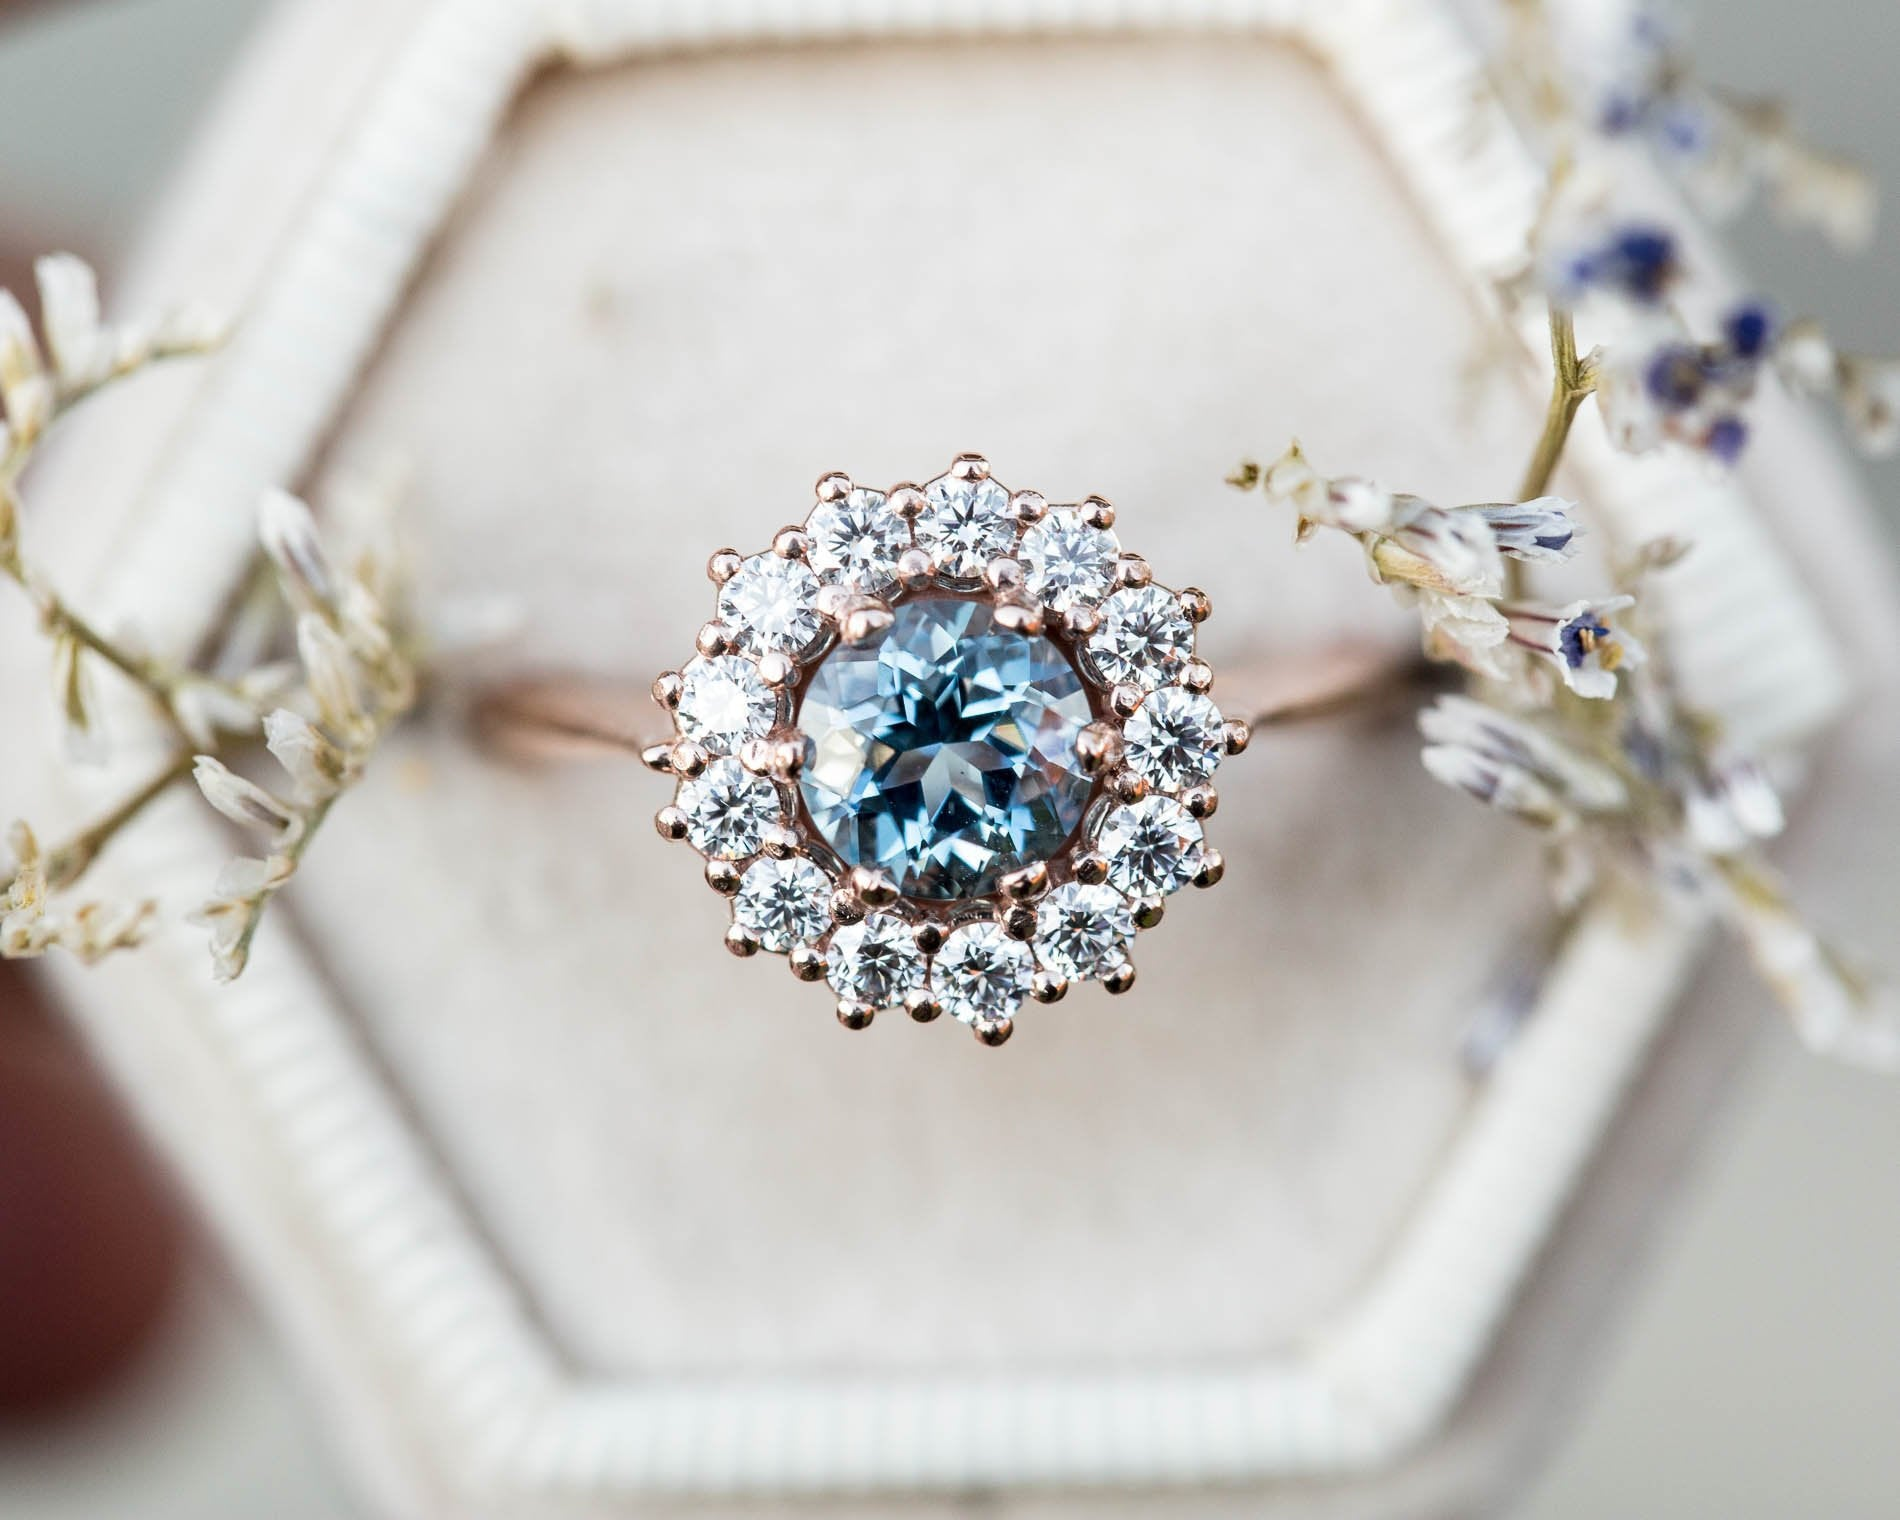 Aquamarine diamond halo engagement ring, cluster vintage inspired ring, made to order in 2-3 weeks